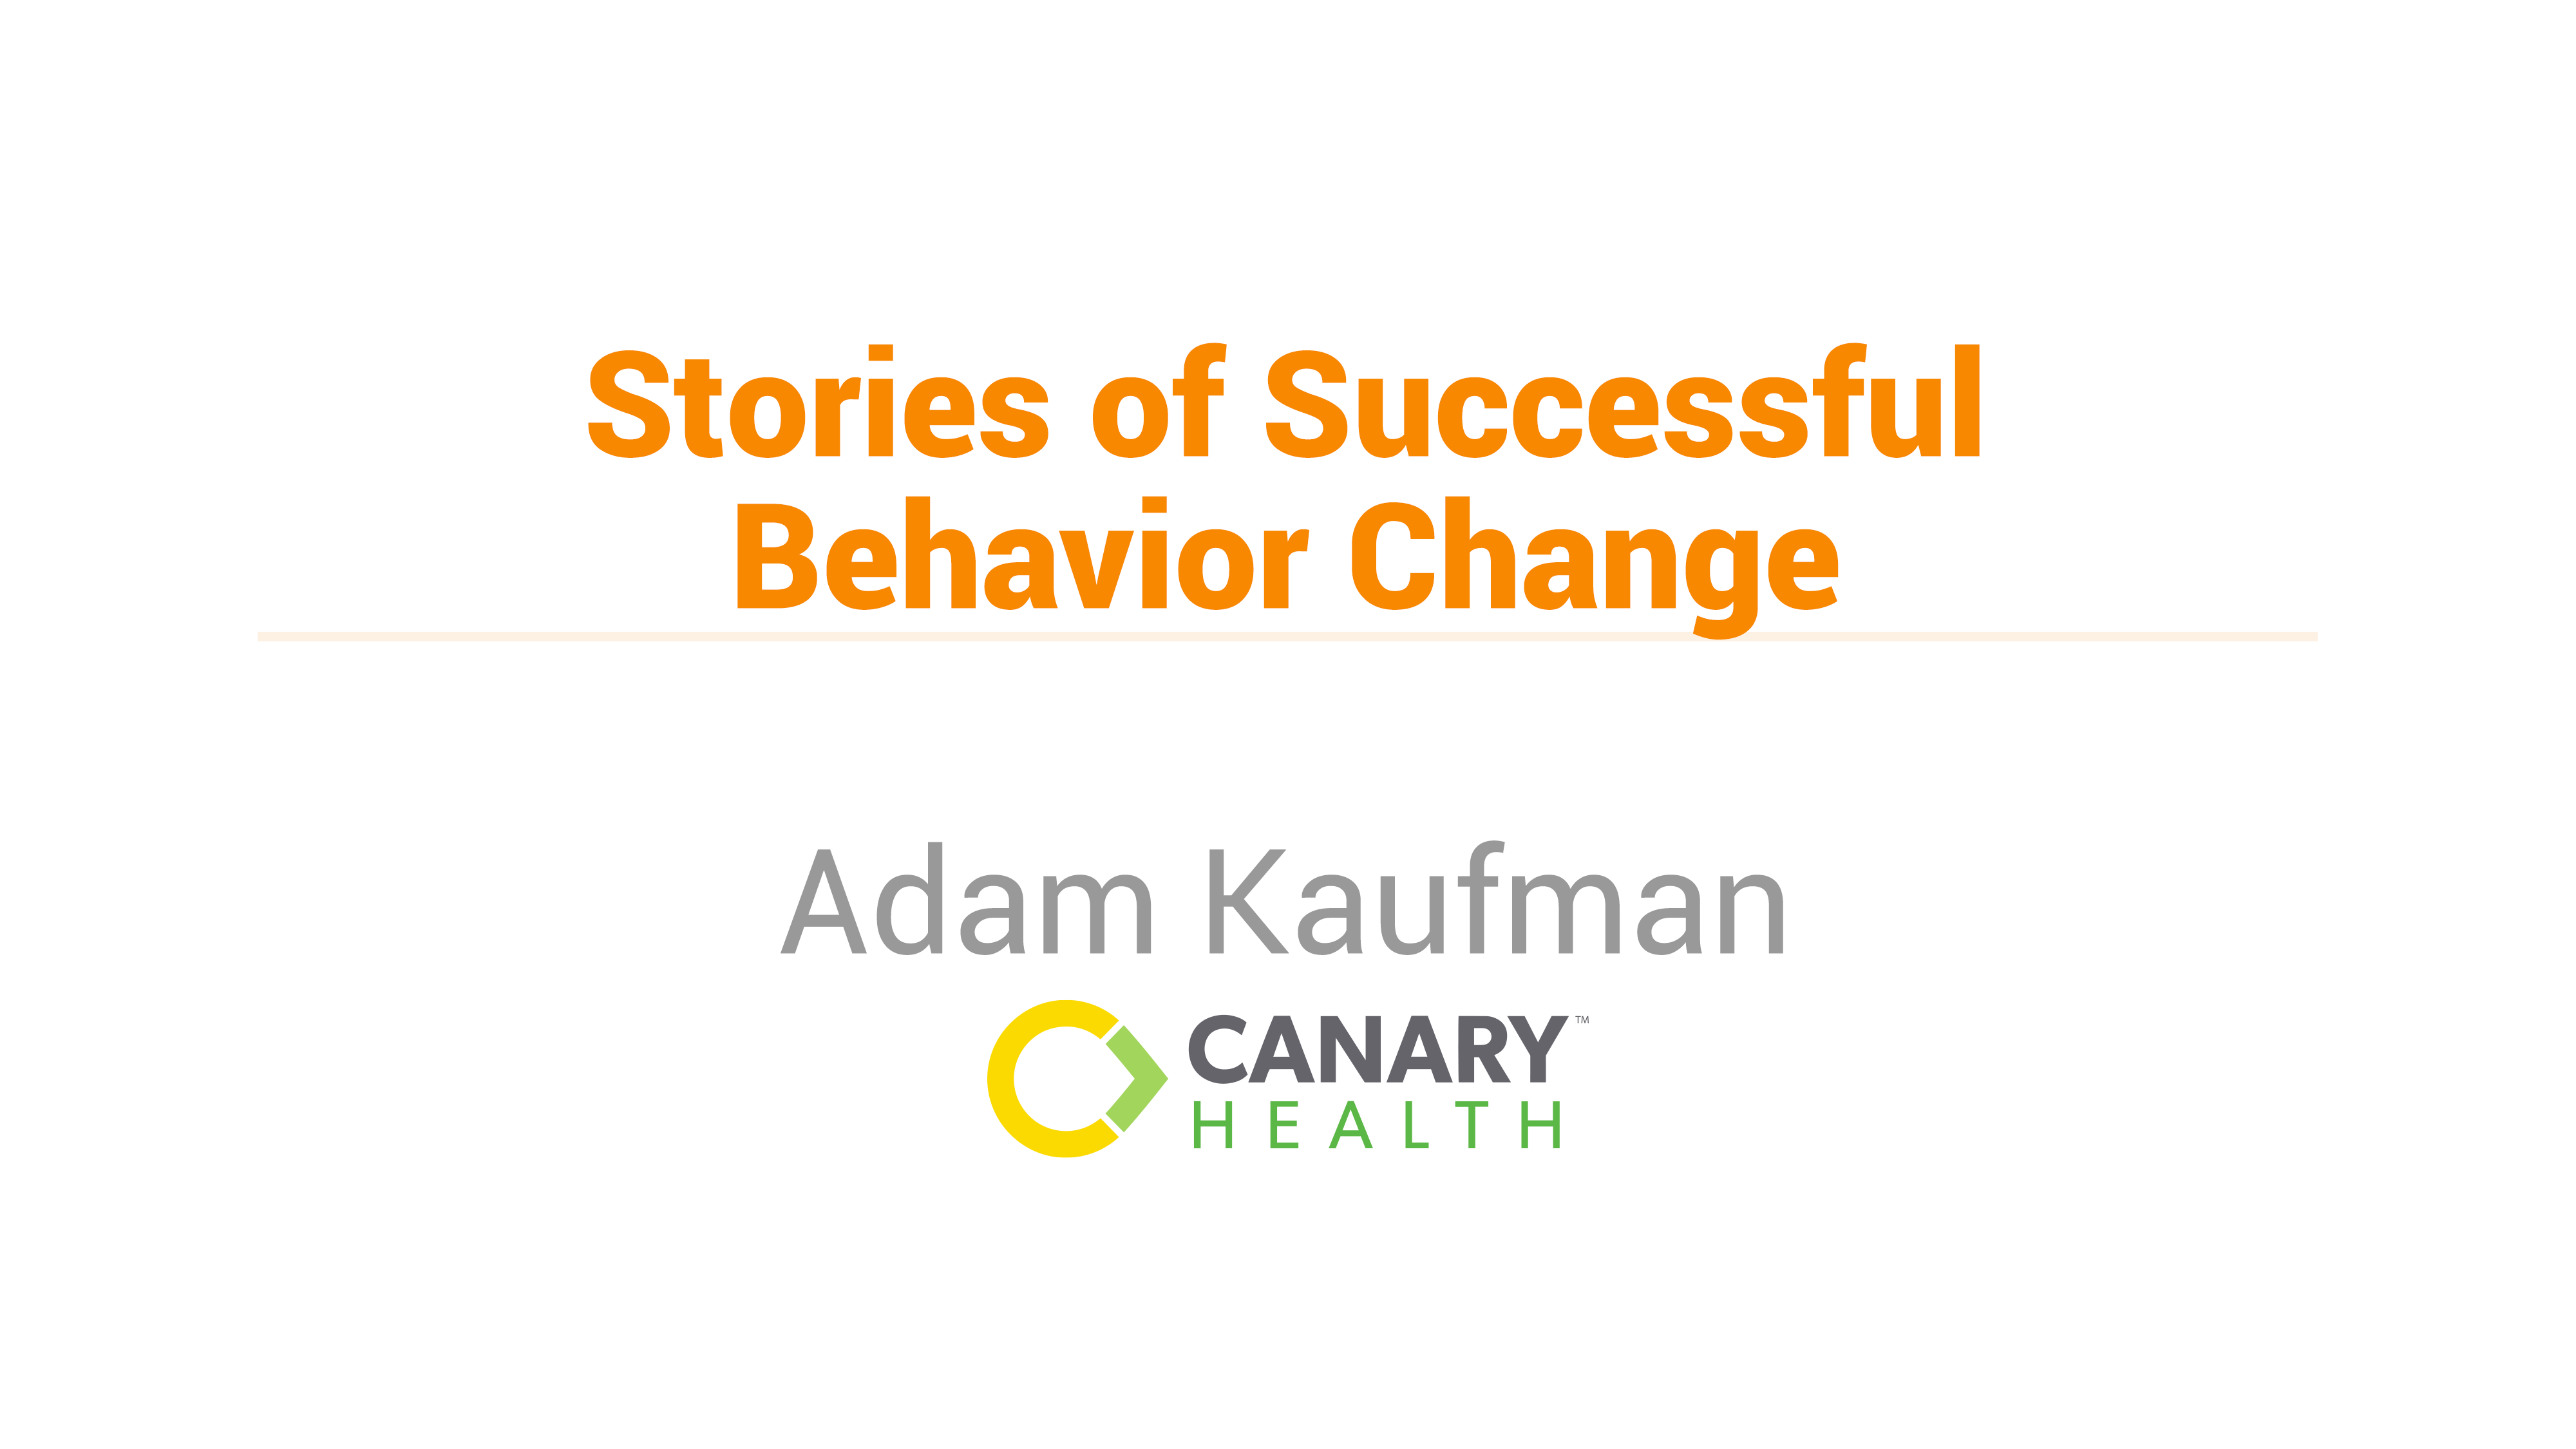 Stories of Successful Behavior Change: Adam Kaufman, Canary Health